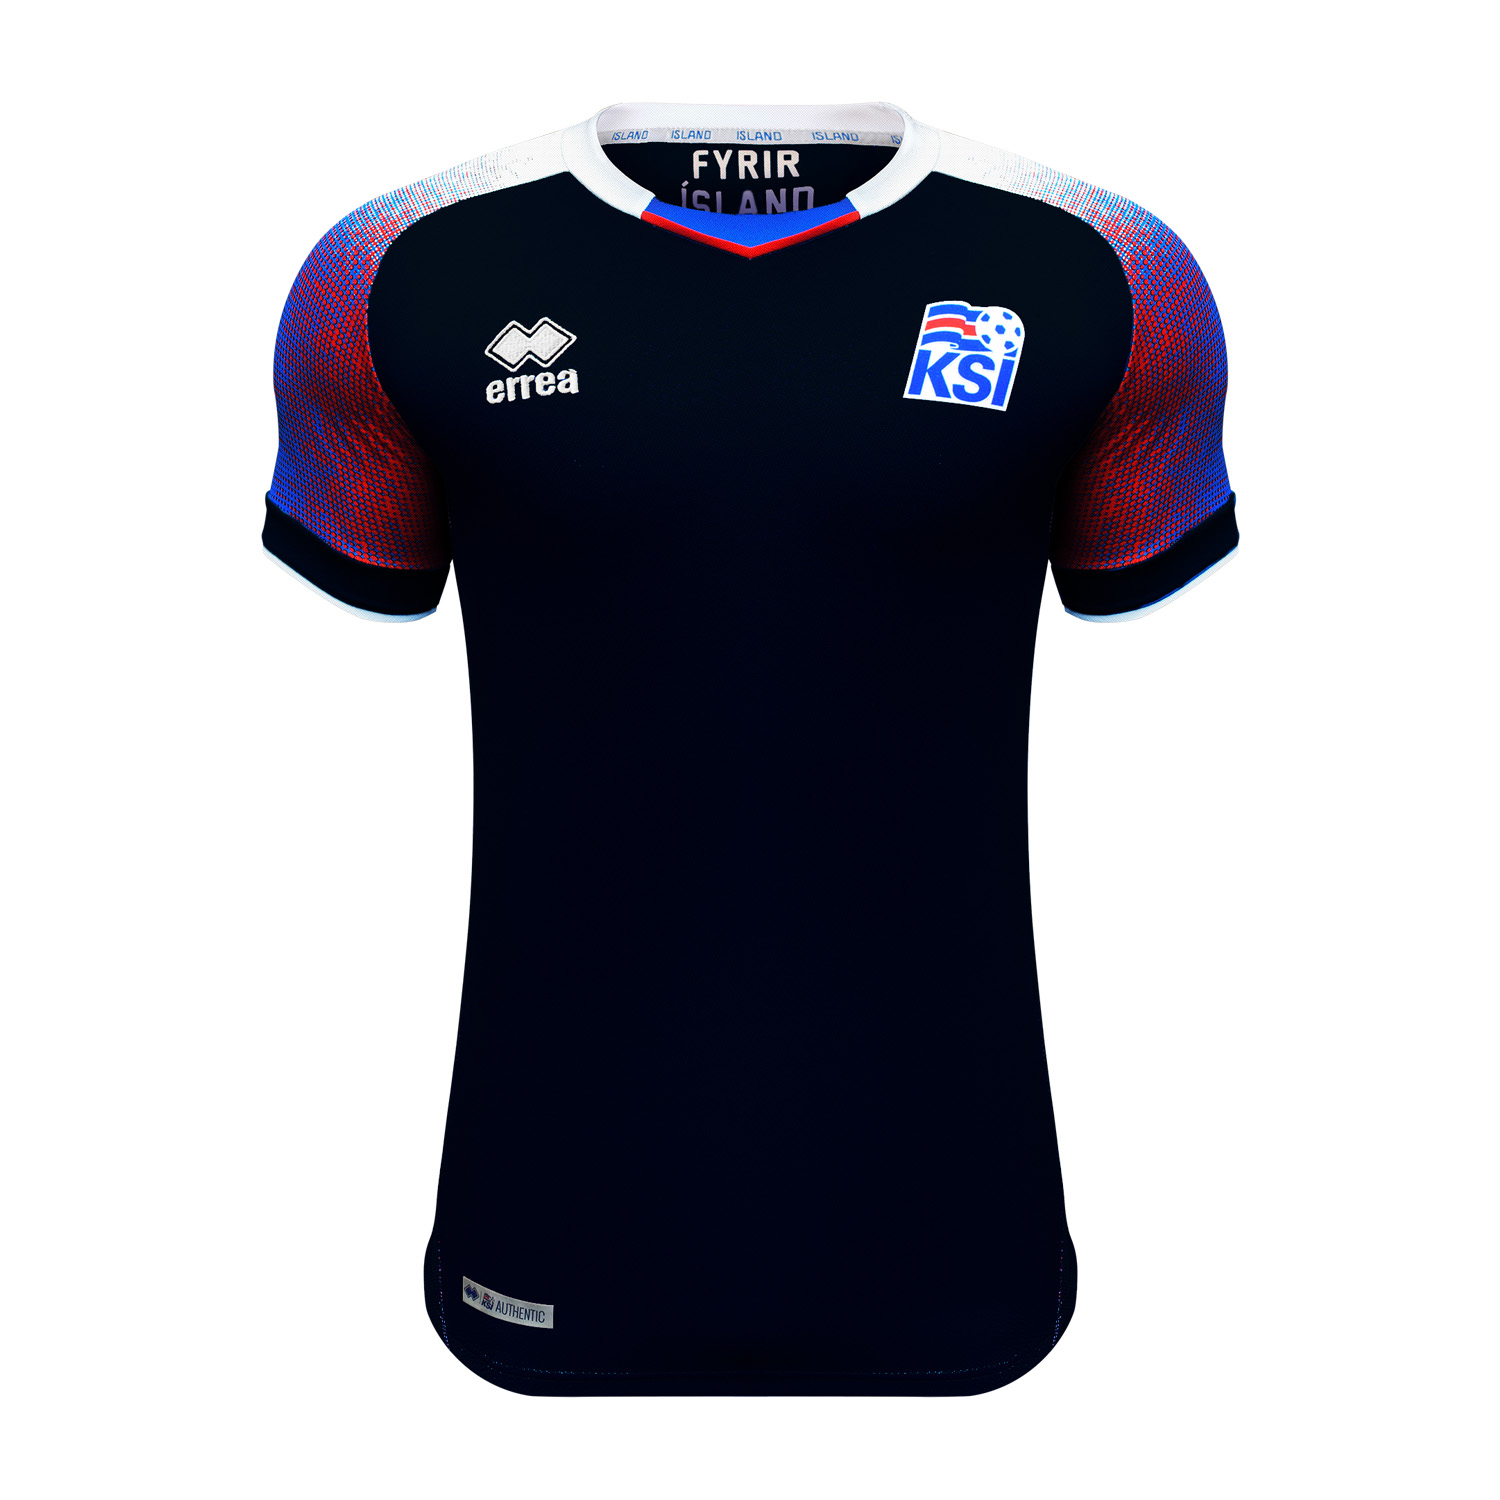 KSÍ - Iceland National Football Team Goalkeeper Shirt 2018 - 2020 - Junior